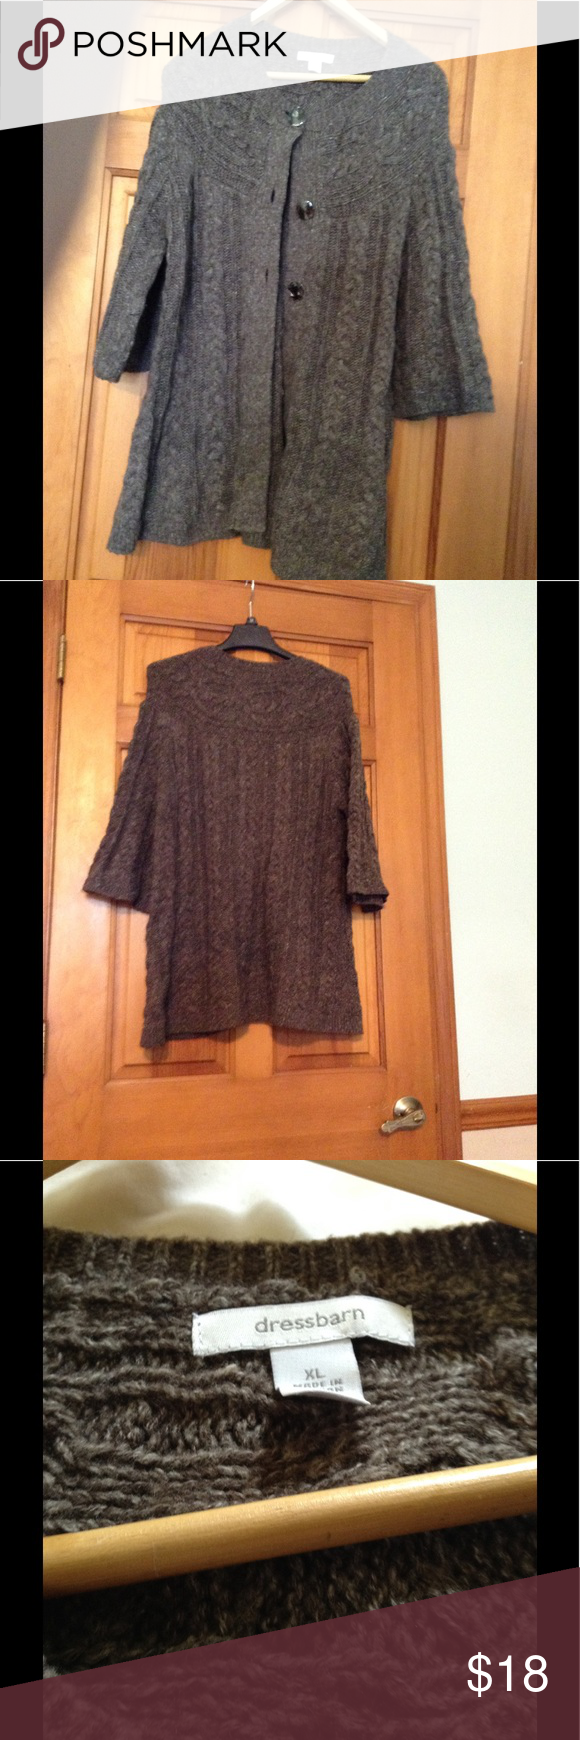 Dress Barn brown, button up long sweater. Dress Barn brown, long ...